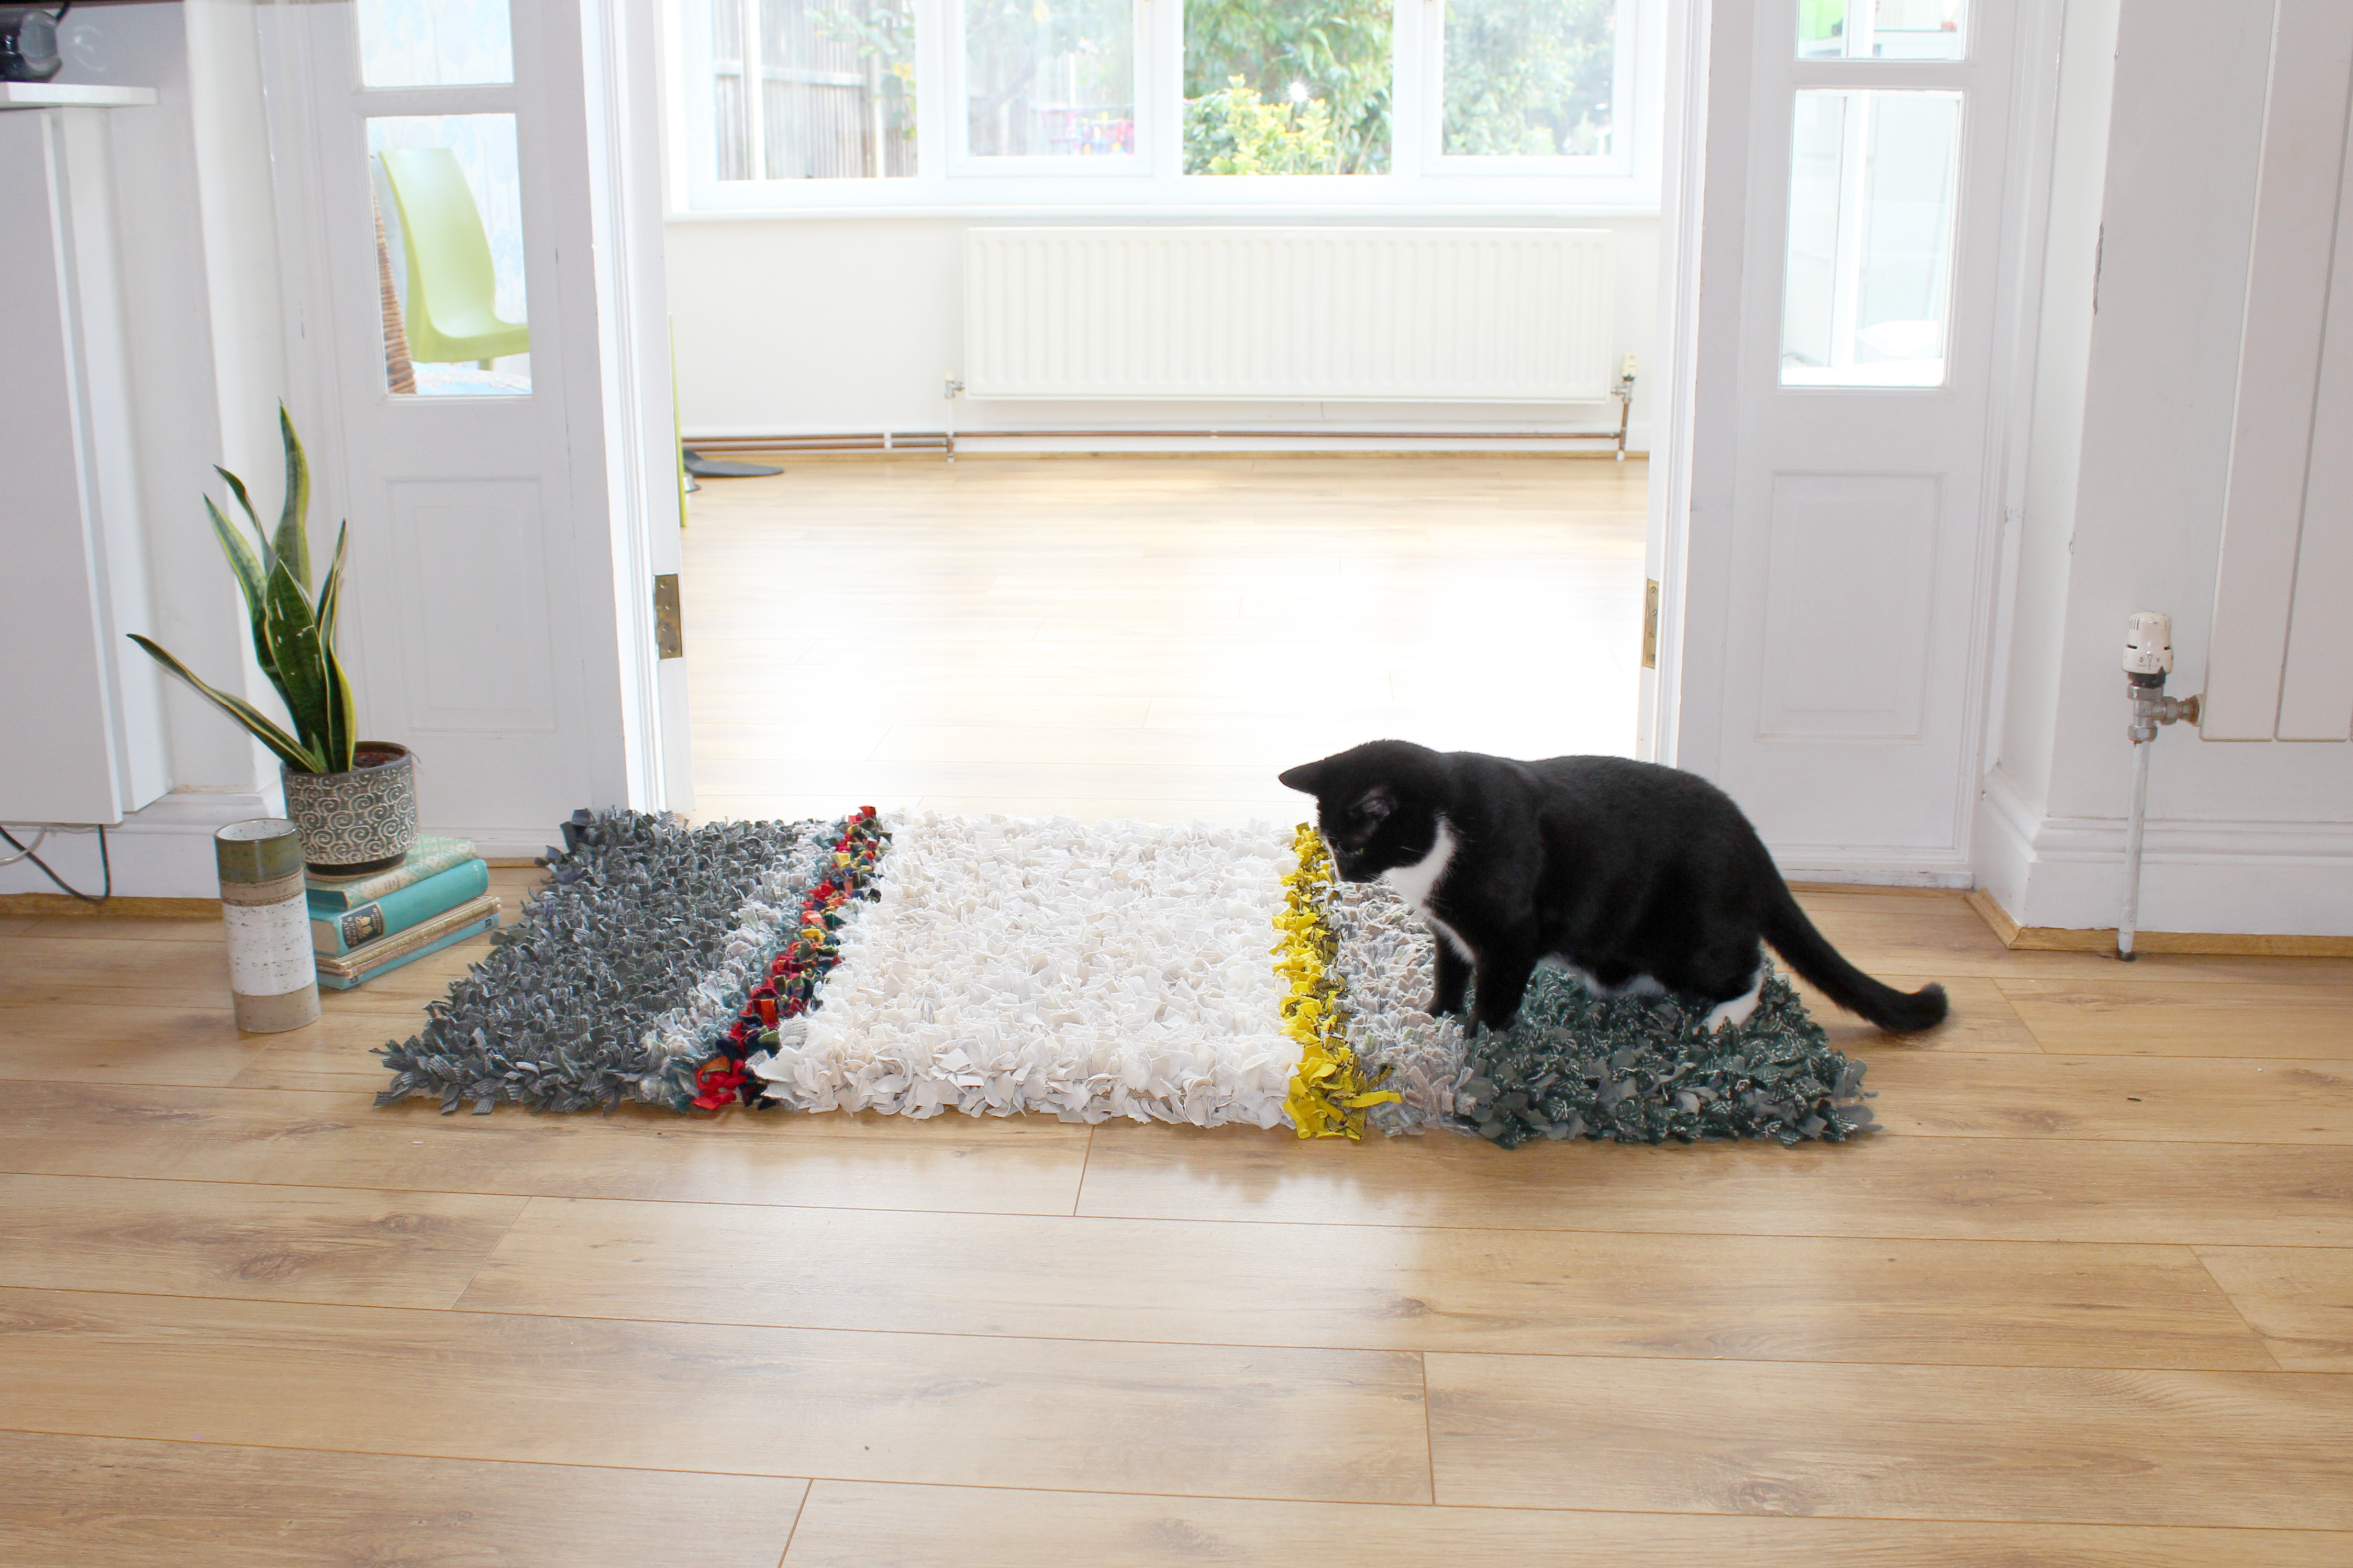 Striped handmade rag rug with cat sitting on it